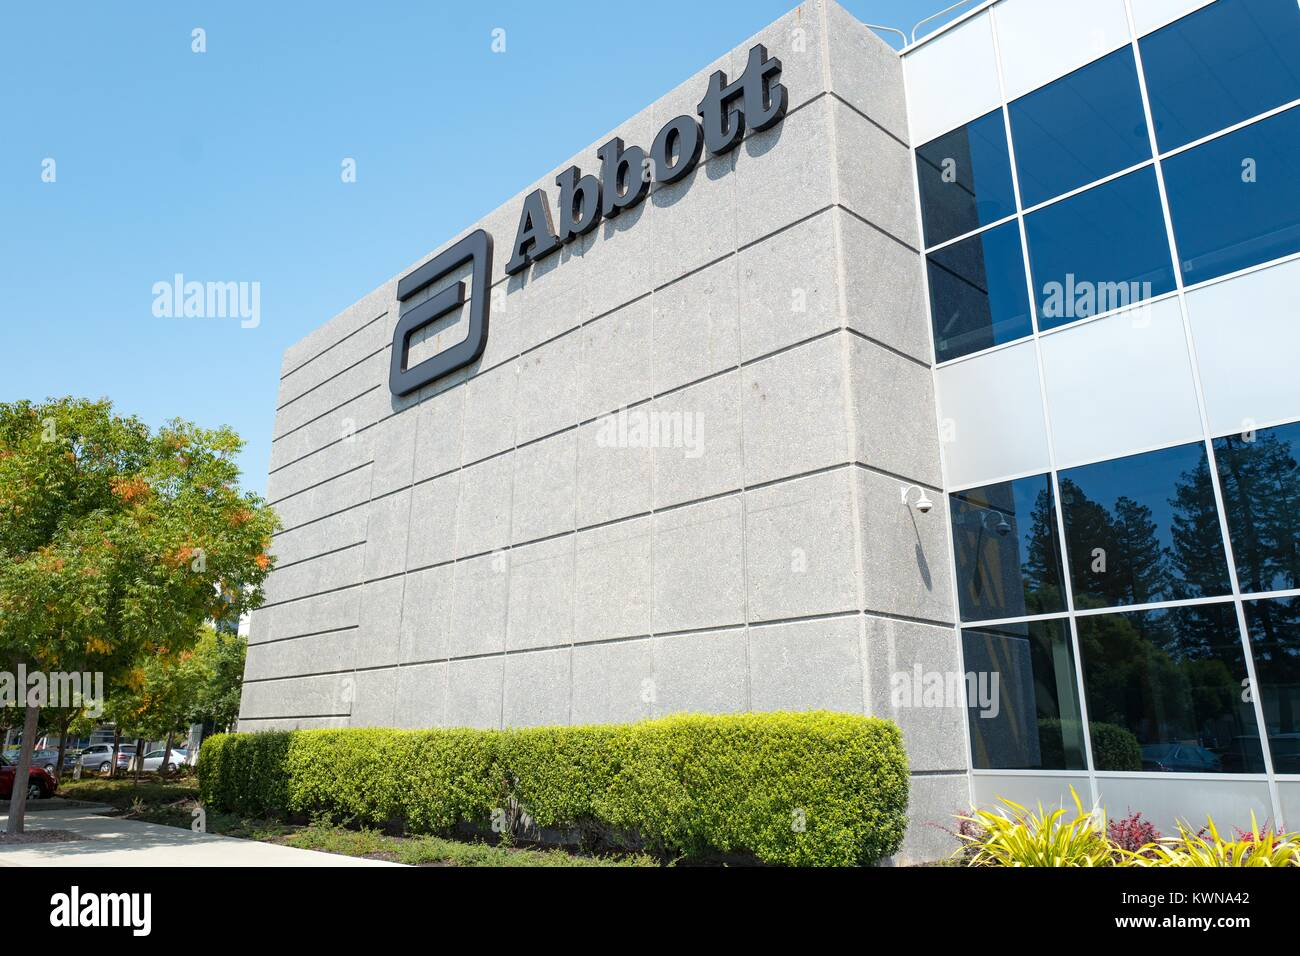 Signage With Logo At The Silicon Valley Headquarters Of Pharmaceutical Company Abbott Santa Clara